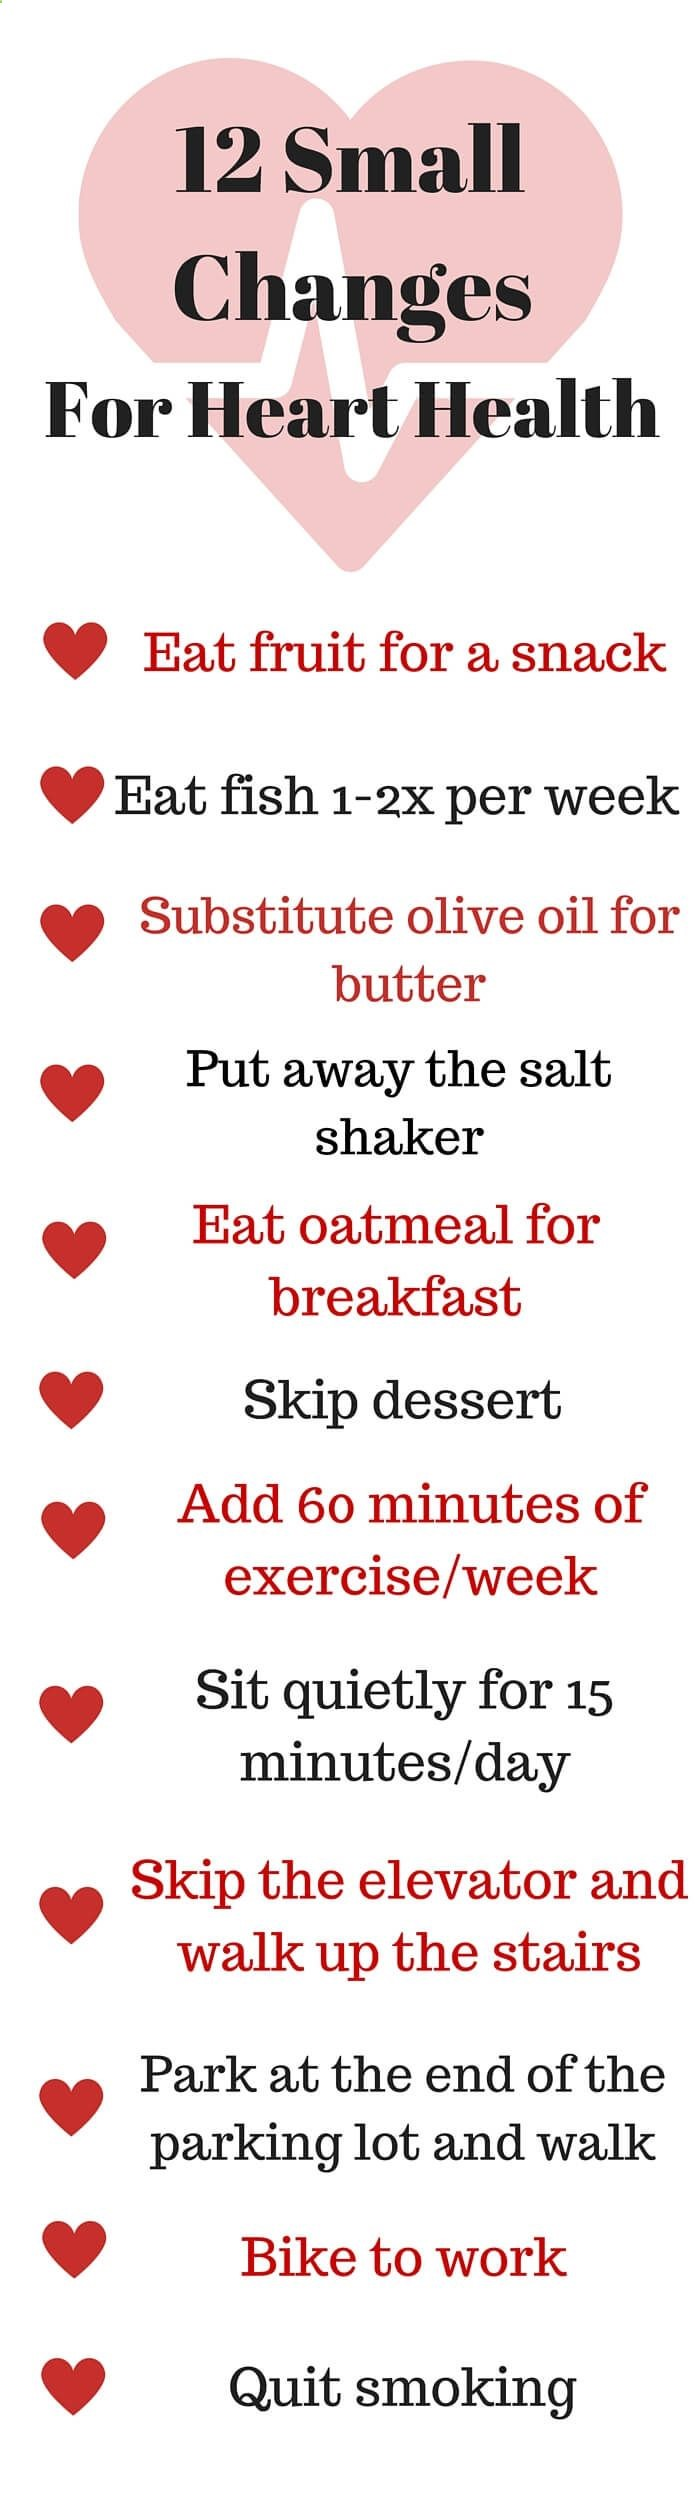 Small Changes, Big Difference to Heart Health